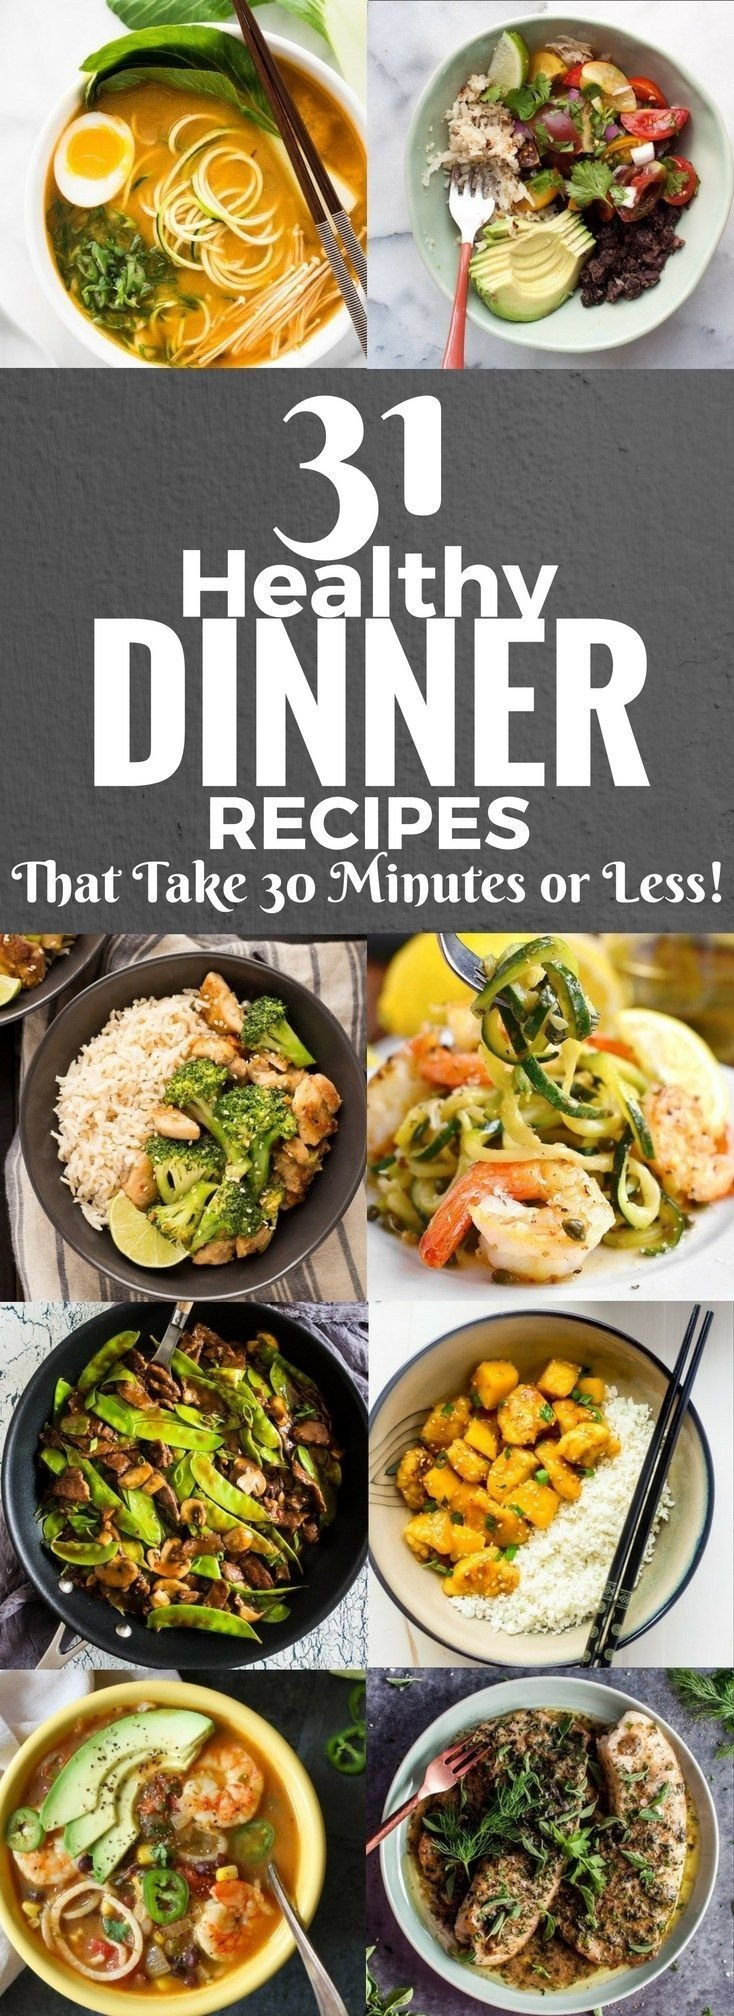 10 Beautiful Quick Easy Healthy Dinner Ideas 533 best meal planning ideas tips and tricks images on pinterest 2020